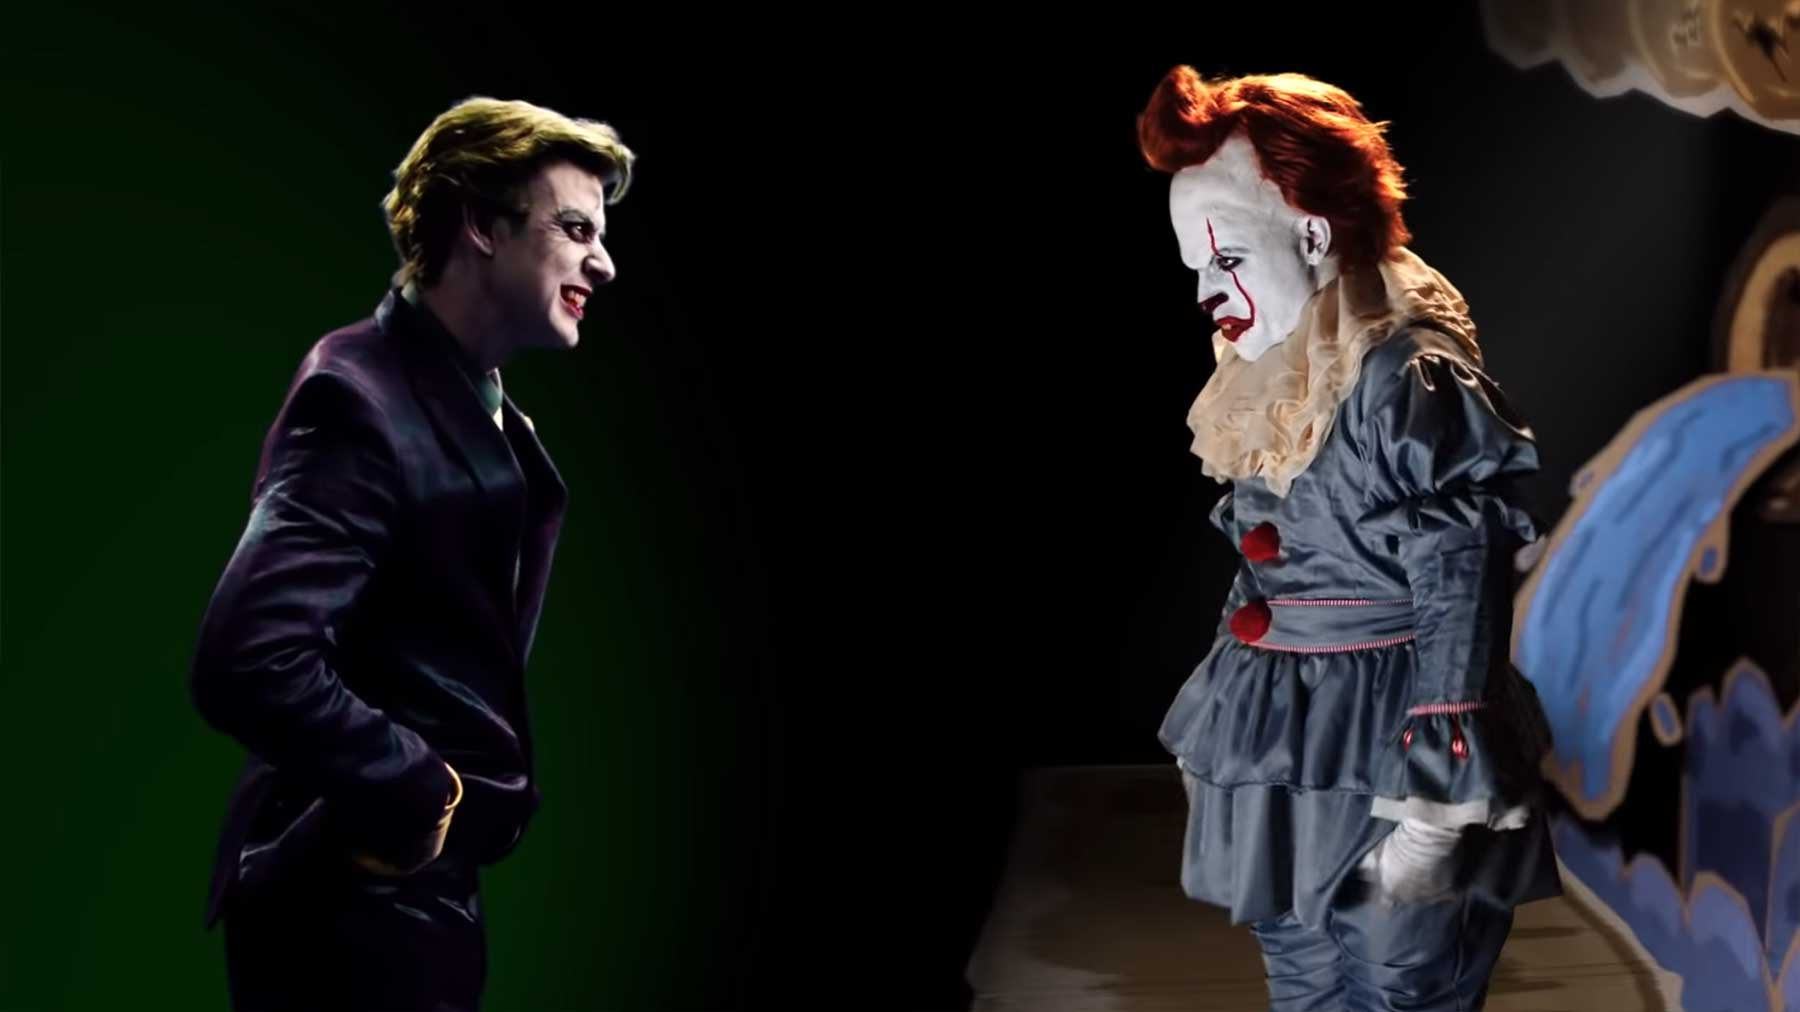 Epic Rap Battles Of History: The Joker vs Pennywise